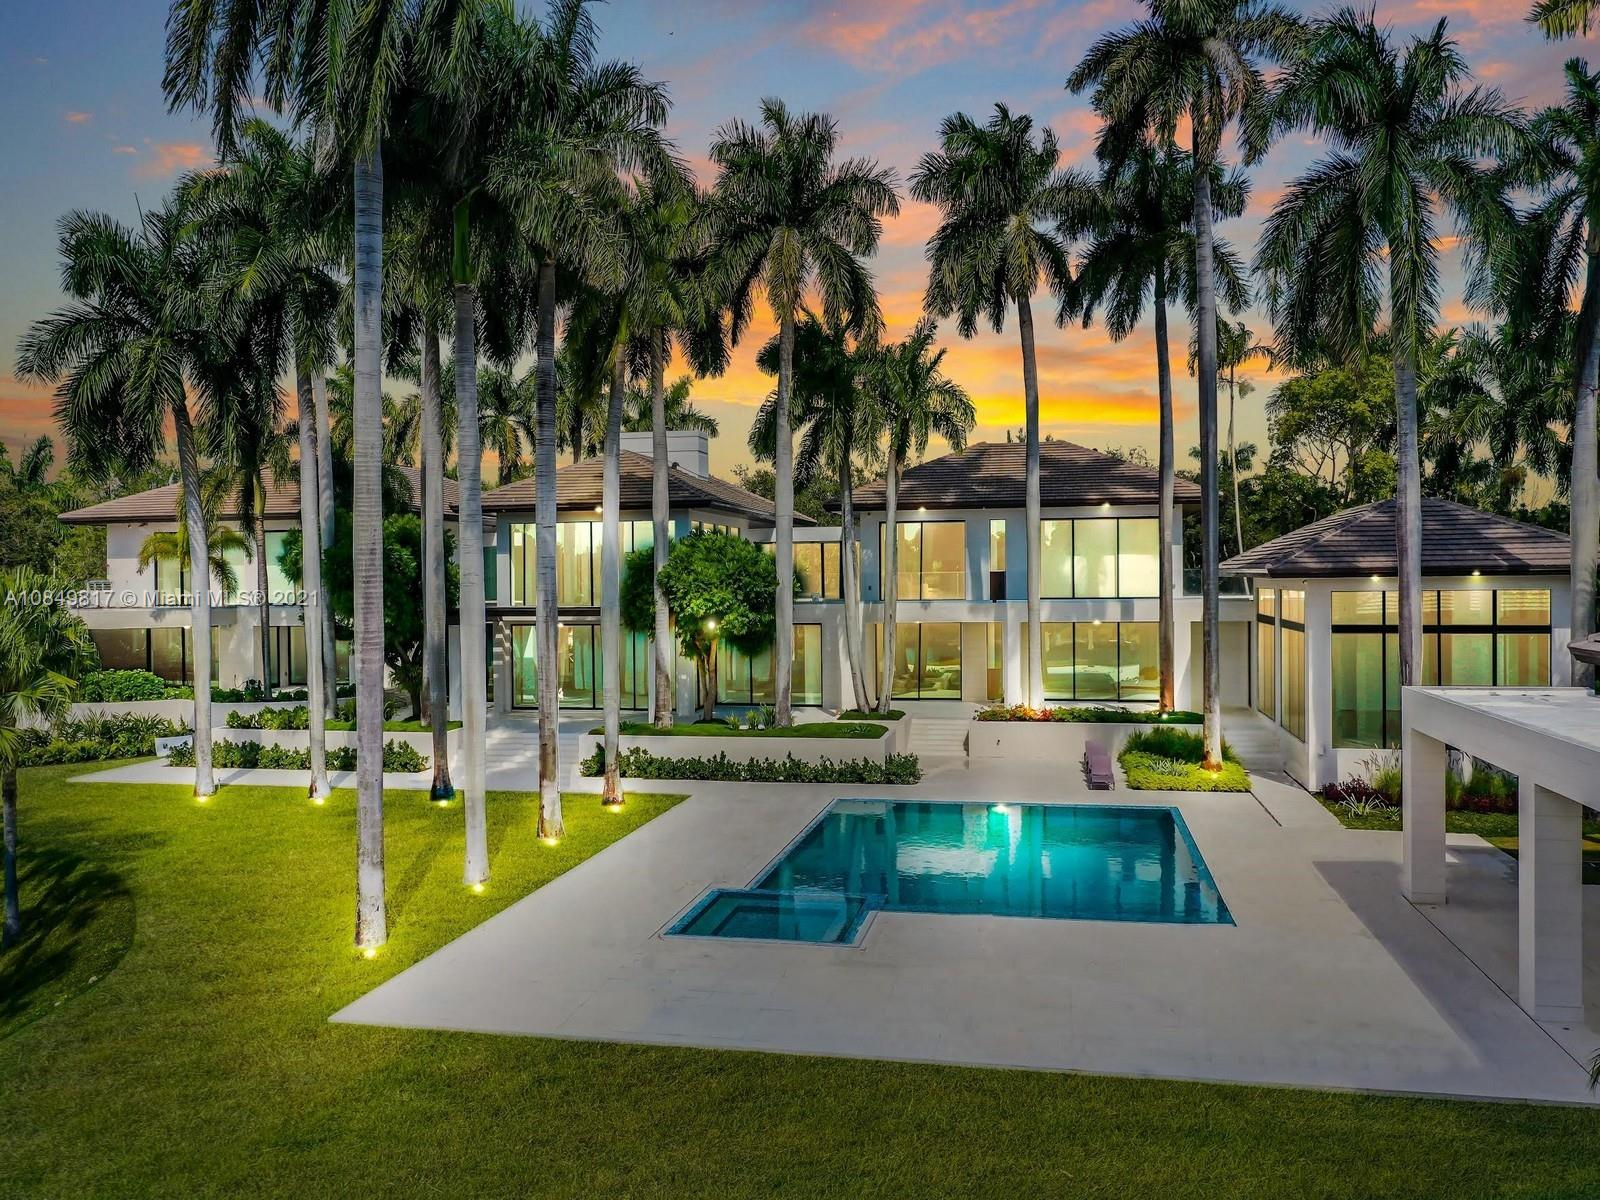 THIS SPECTACULAR ESTATE IN THE EXCLUSIVE GATED COMMUNITY OF GABLES ESTATES, OFFERS 22,374 SQFT, ON 87,125 SQFT LOT, 8 BEDROOMS,14.5 BATHROOMS,345 FT. EXPANDED LAGOON WATERVIEW.ELEGANT,MODERN SOPHISTICATED ARCHITECTURE W/AN IMPRESSIVE IN LARGE SCALE HOME DESIGNED W/THE FINEST IMPORTED FINISHES. PYRGON, MARBLE & WOOD FLOORS.CARPORT,WATERFALL,POOLS LEADS TO THE IMPRESSIVE  FOYER & LIVING ROOM DOUBLE VOLUME CEILINGS. THIS SMART HOME CONTROL SYSTEM,THE LUTRON LIGHTING,AC,TVs,MUSIC,ECT. A WATERVIEW MASTER SUITE W/ PRIVATE OFFICE,HIS & HERS MARMOL BATHROOMS,CUSTOM-BUILT CLOSETS,LARGE BALCONY W/ ITALIAN GLASS RAILING OVERLOOKING THE GUEST HOUSE,POOL,GYM. PROFESSIONAL KITCHEN W/ TOP OF THE LINE WOLF,MIELE & SUBZERO APPLIANCES,5,000 BOTTLE WINE CELLAR,SUMMER KITCHEN,THEATER,SAUNA, MASSAGE ROOM